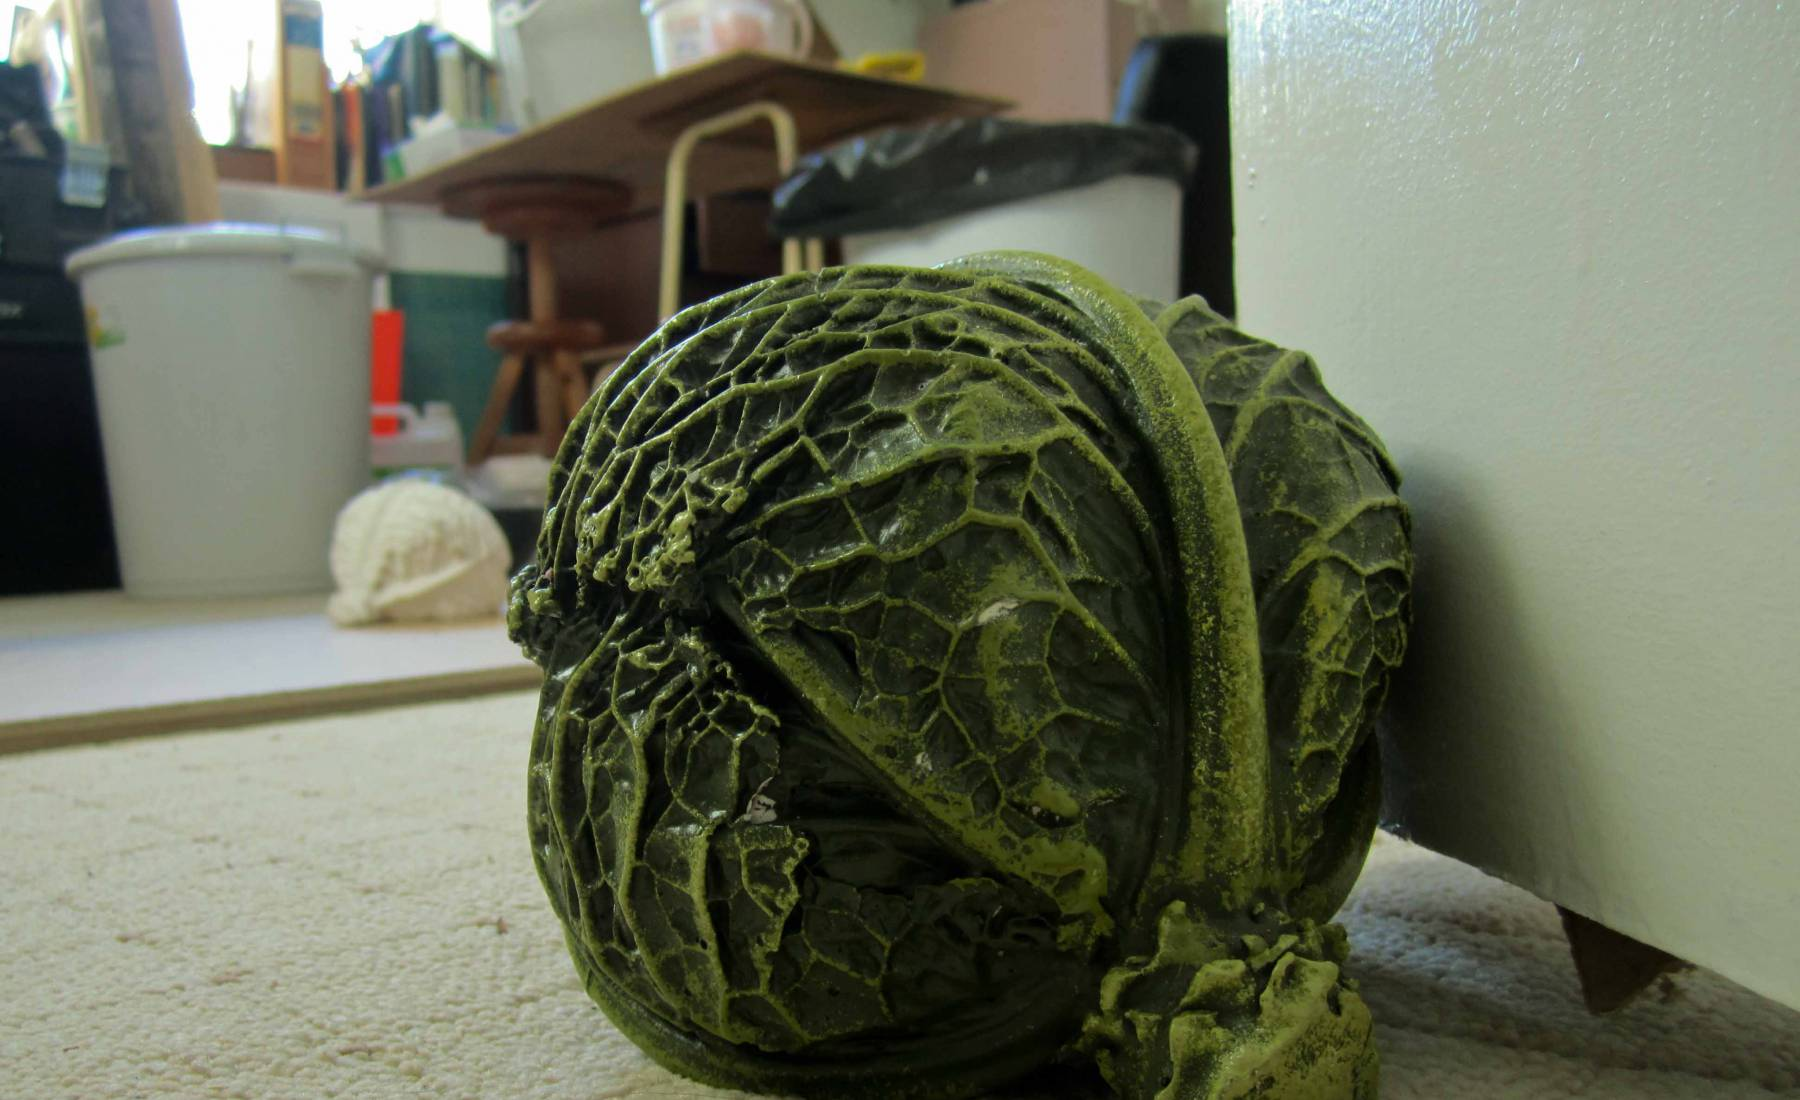 resin cabbage, vegtables, fake food, doorstop, green, realistic, cast, water based resin, vegetable shop, galley kitchen